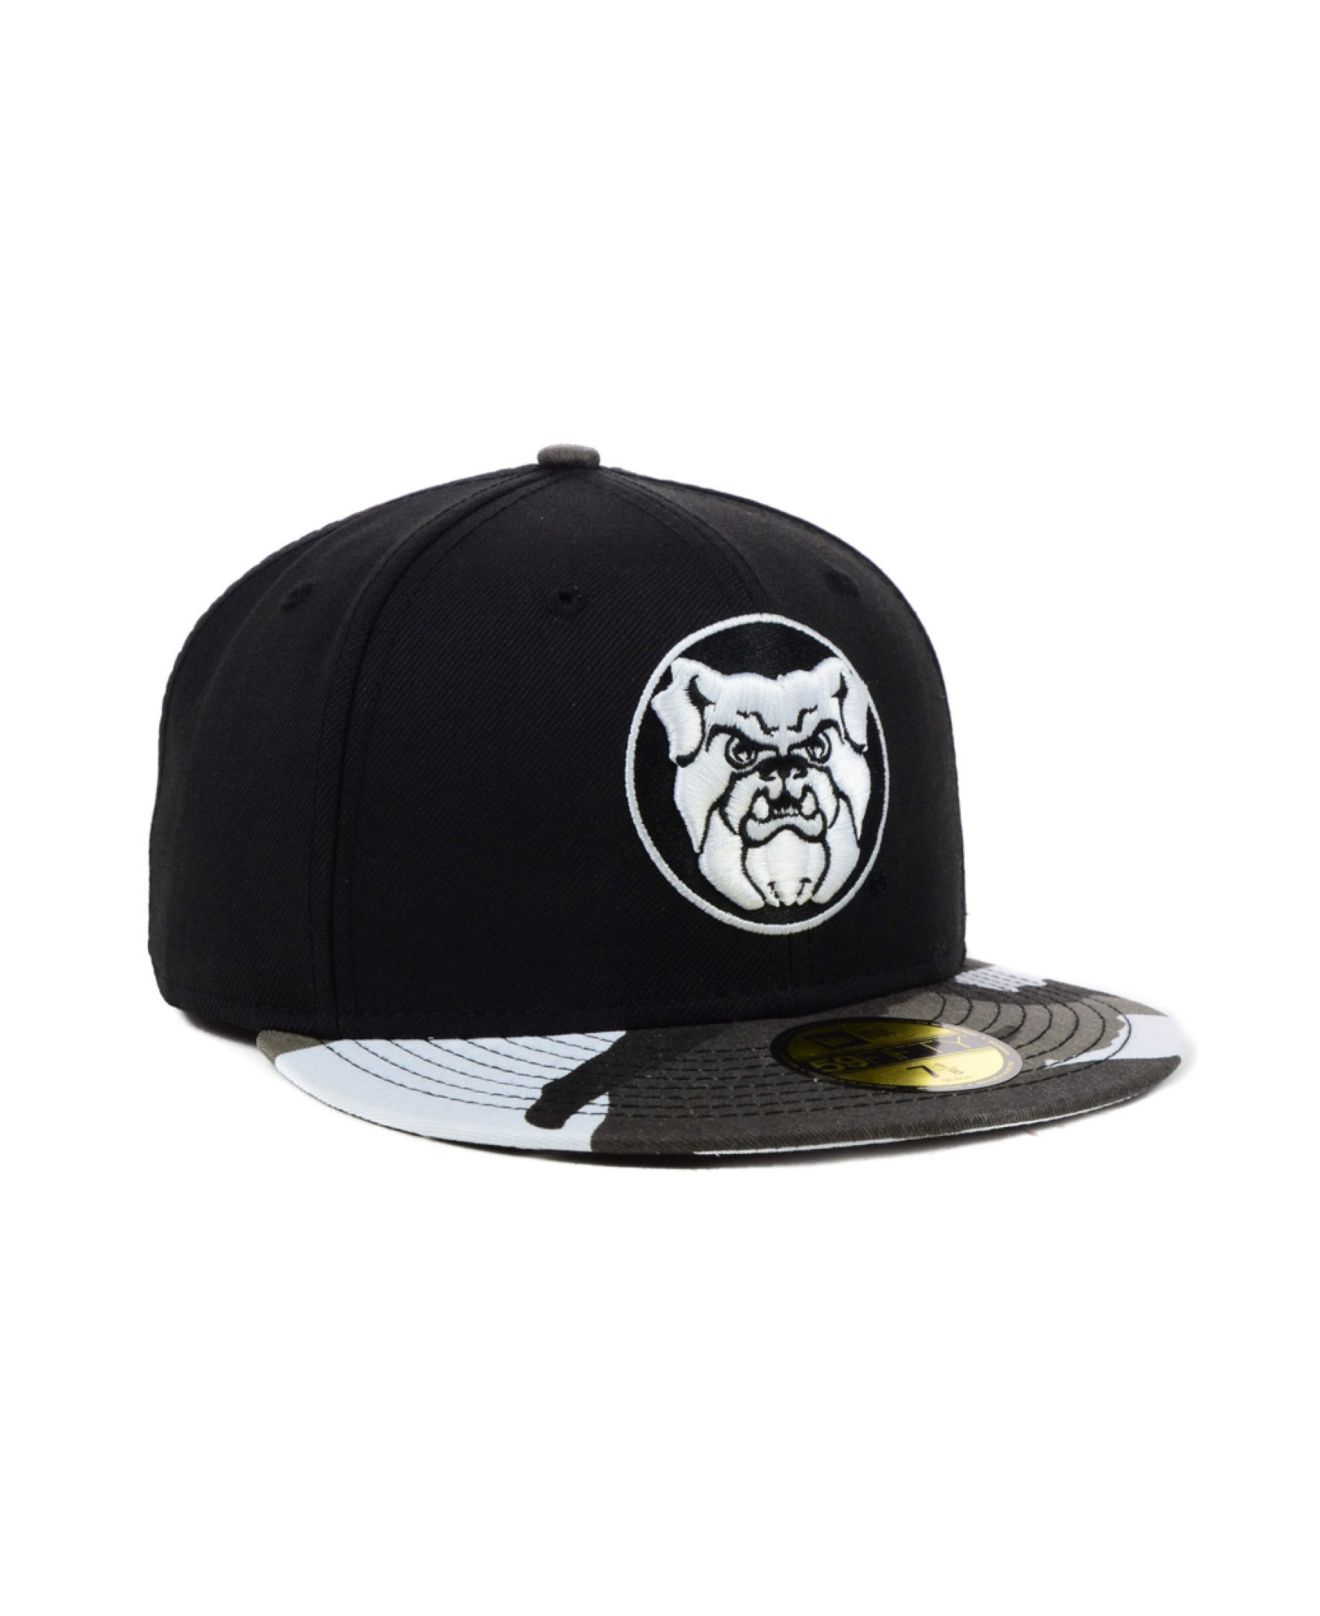 5ae0d22bee9 Gallery. Previously sold at  Macy s · Men s New Era 59fifty Men s Bucket  Hats ...